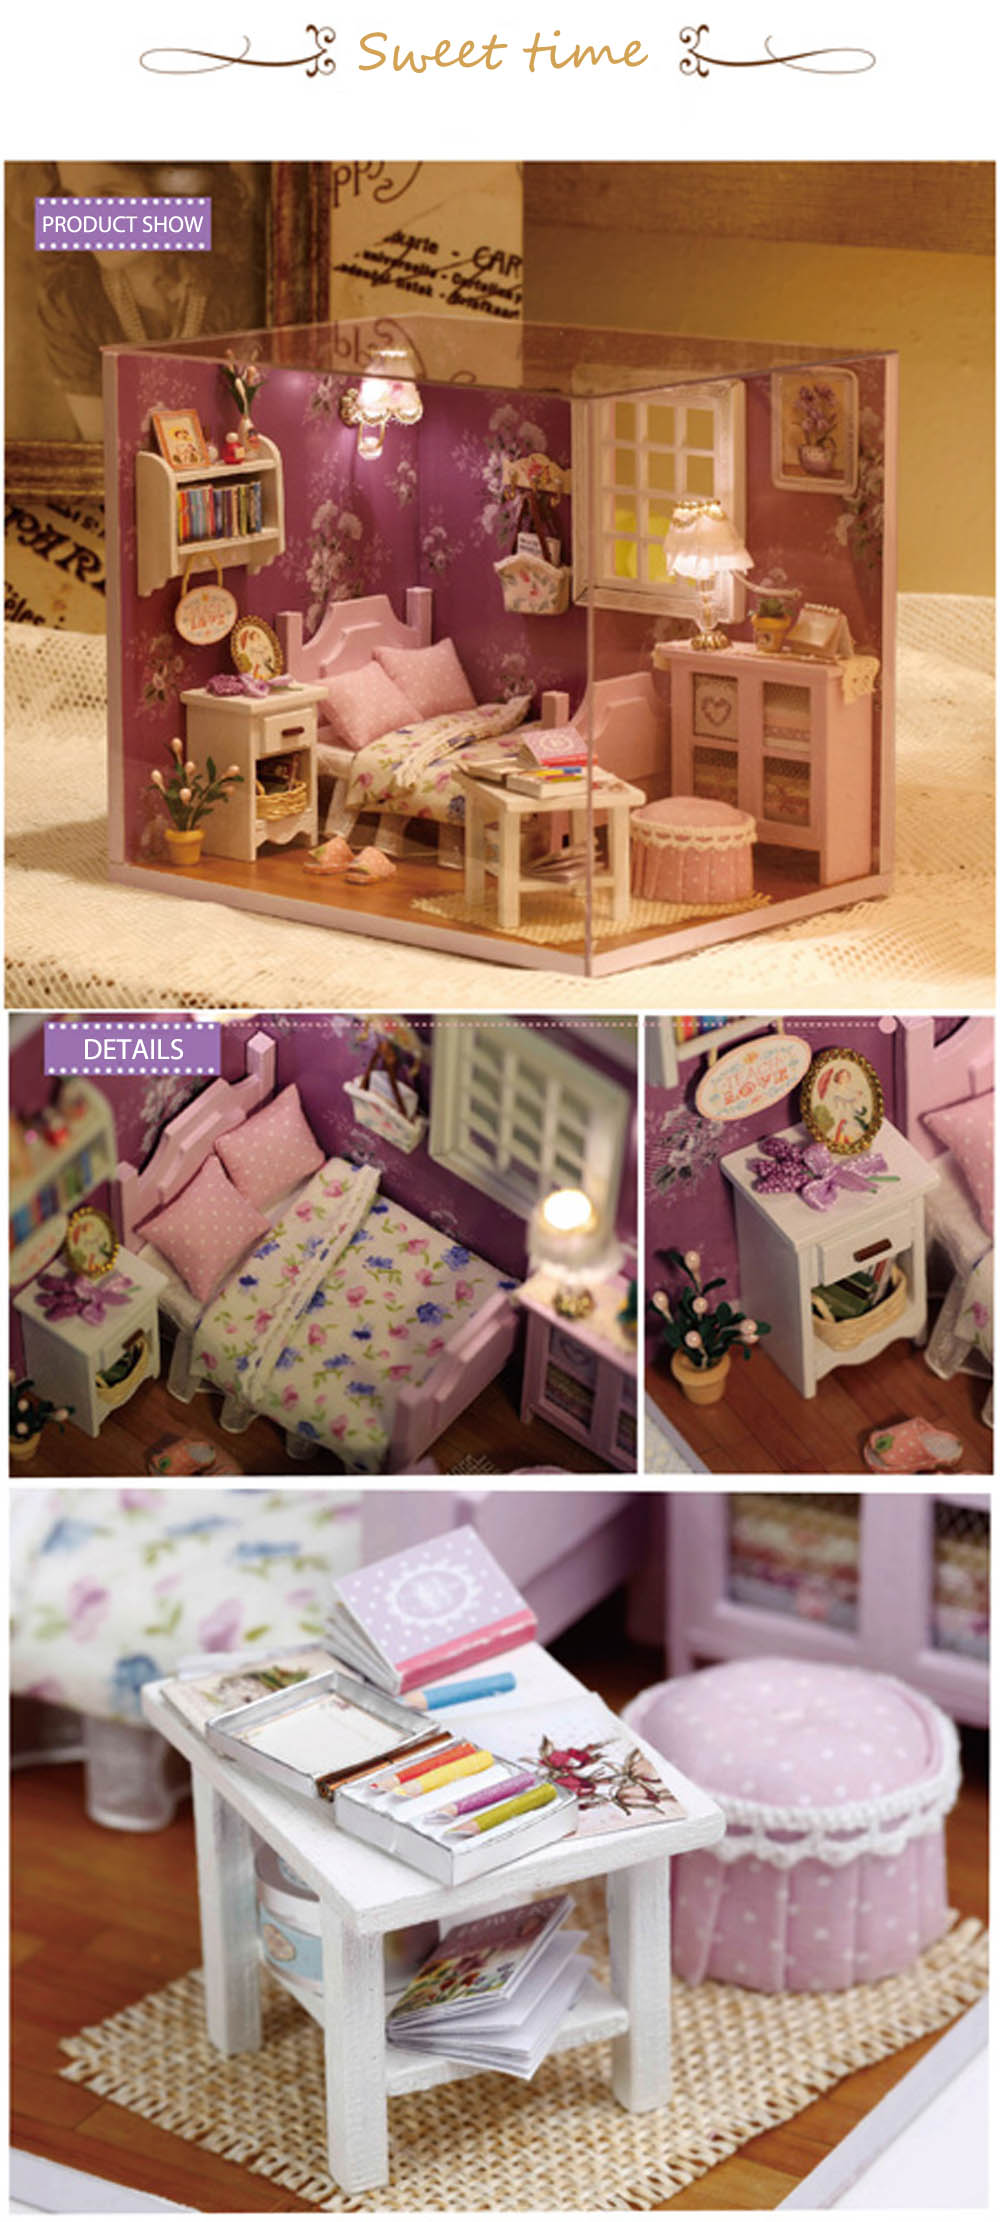 CUTEROOM H - 003 DIY Wooden House Furniture Handcraft Miniature Box Kit